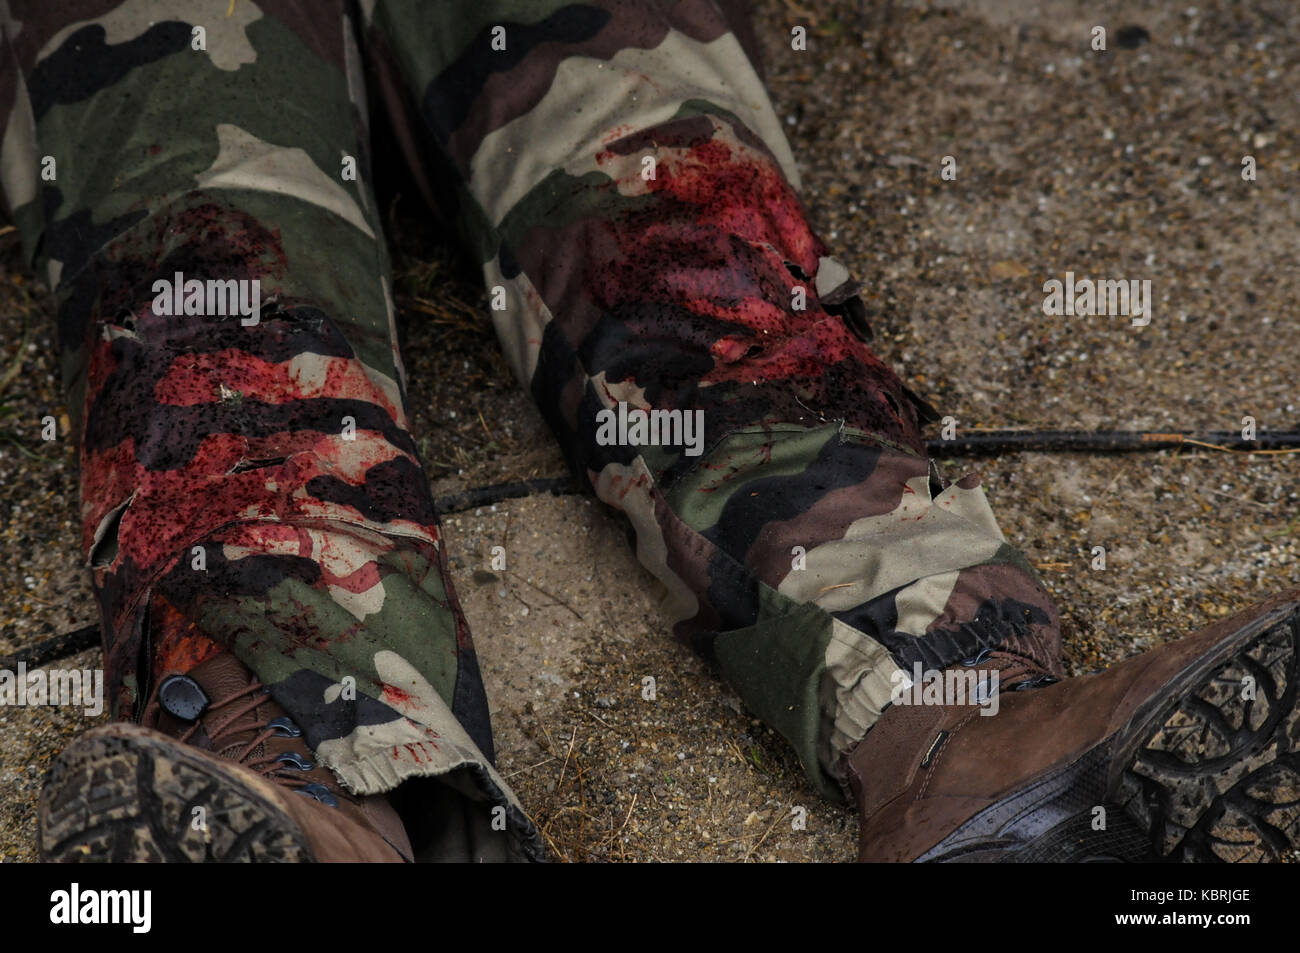 Realistic making-up simulates war injuries on walkers on legs, Bron, France - Stock Image